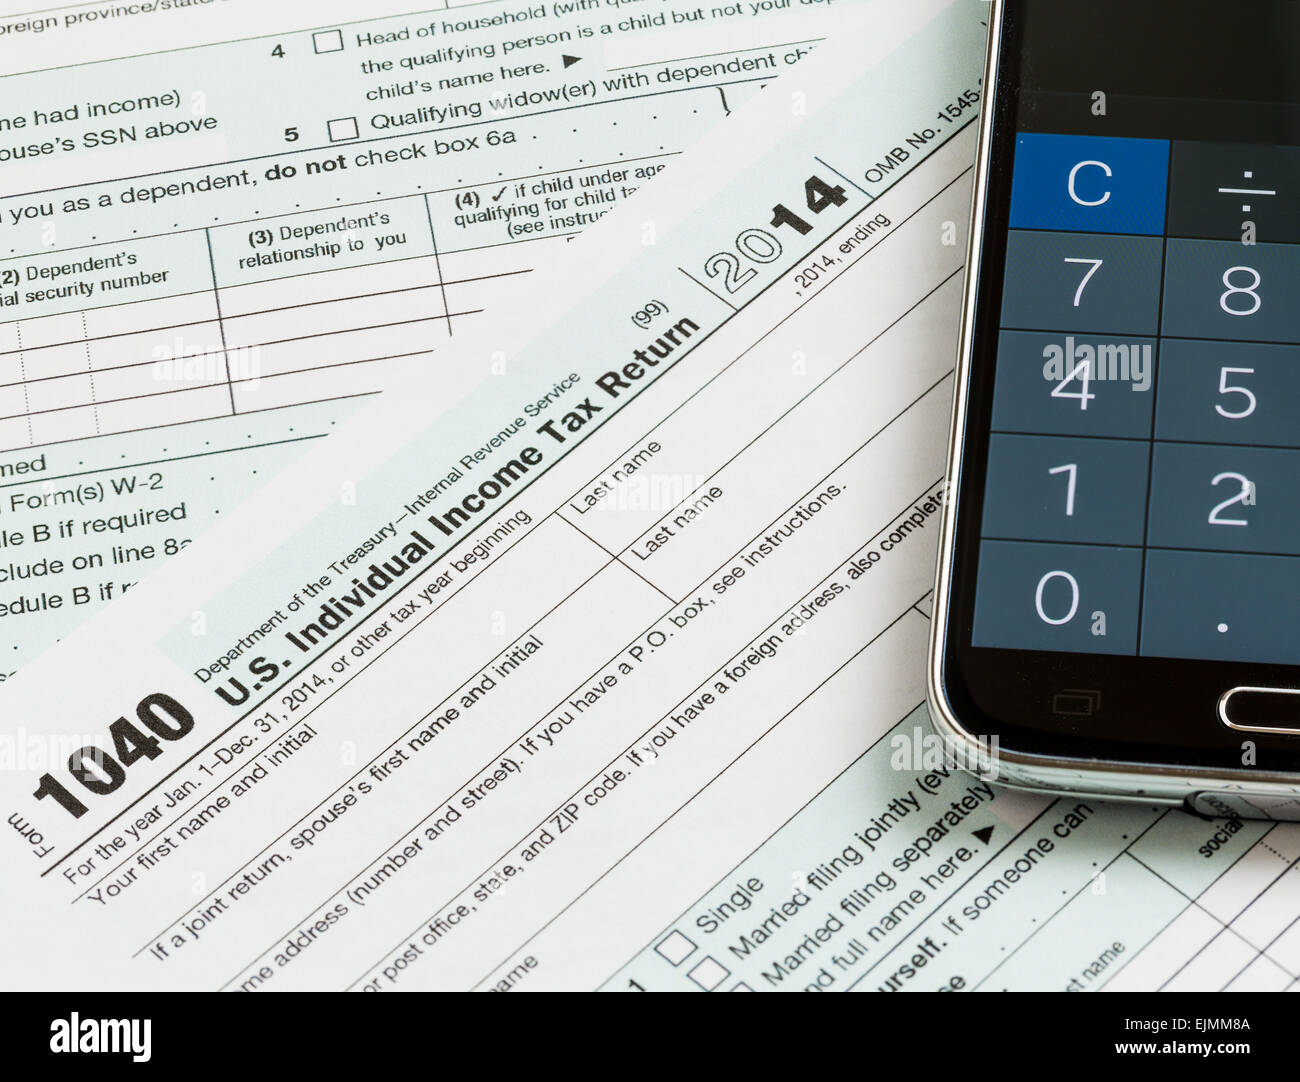 Usa Tax Form 1040 For Year 2014 With Calculator App On Smartphone